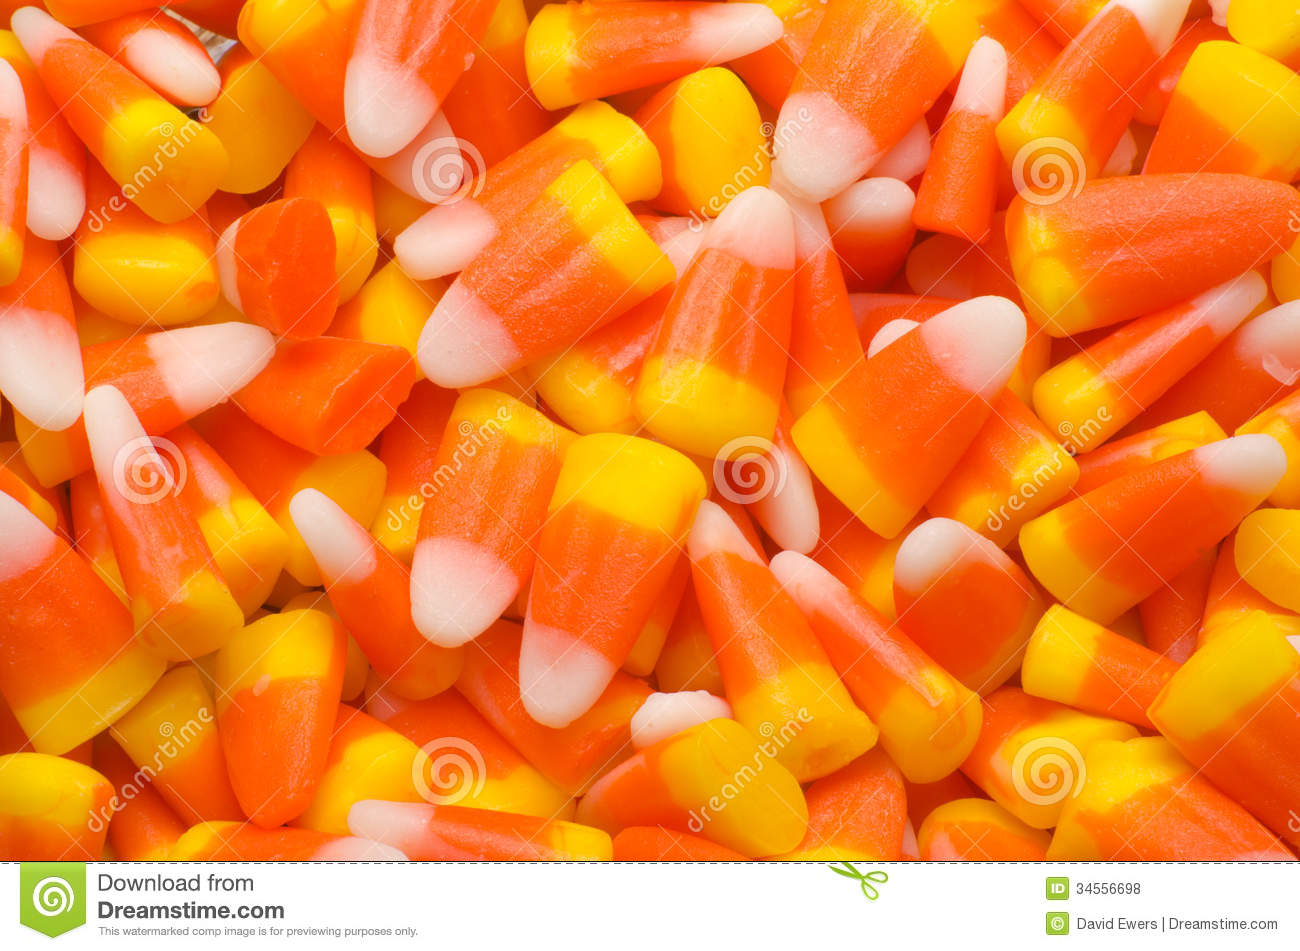 Colorful candy corn background.